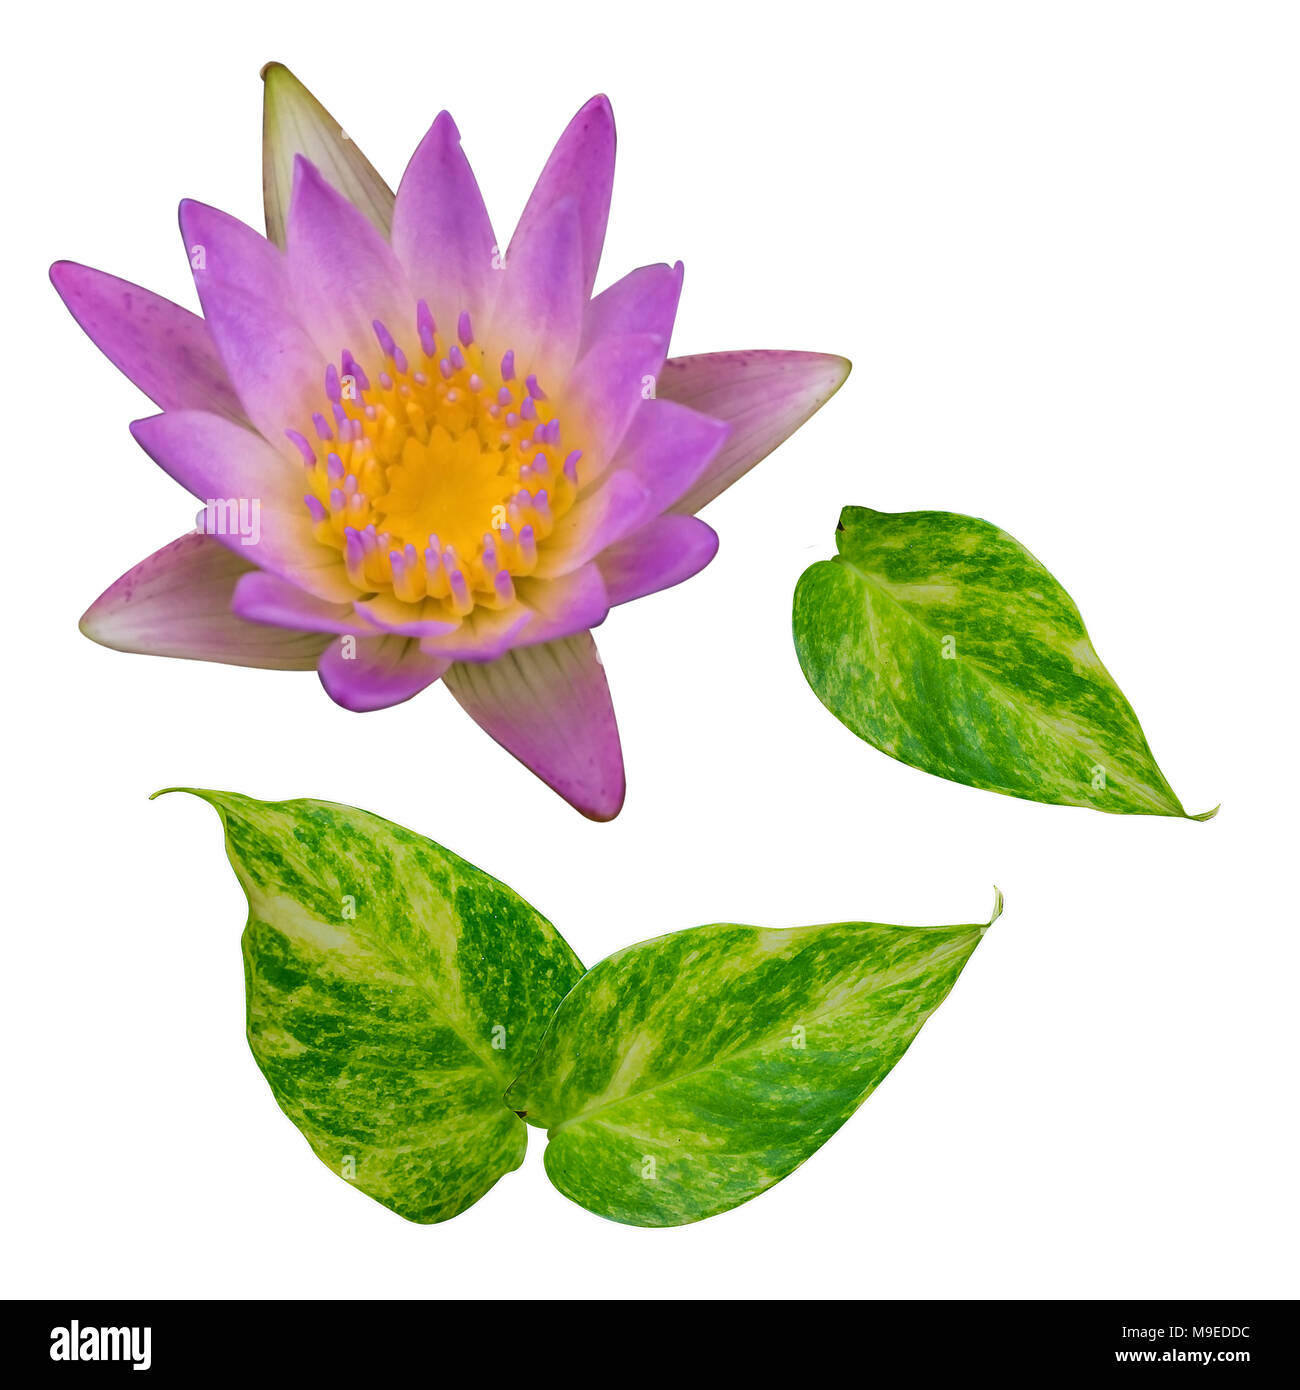 Green Leaf And Pink Lotus Flower Isolate On White Background Stock